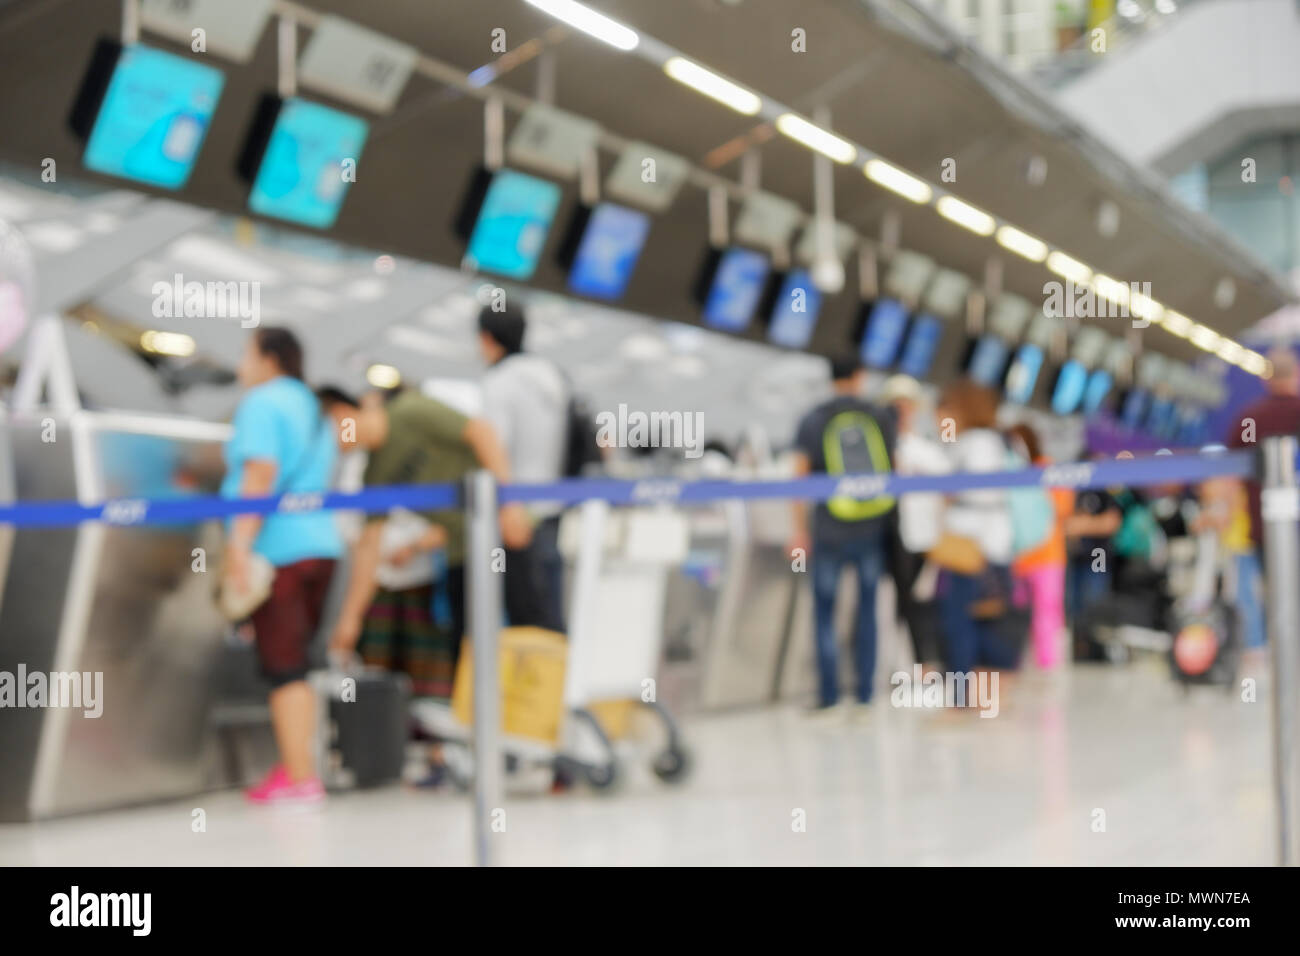 Blurred defocused image of passengers check in at the check-in counter at the international airport. Royalty high-quality stock image of people waitin - Stock Image